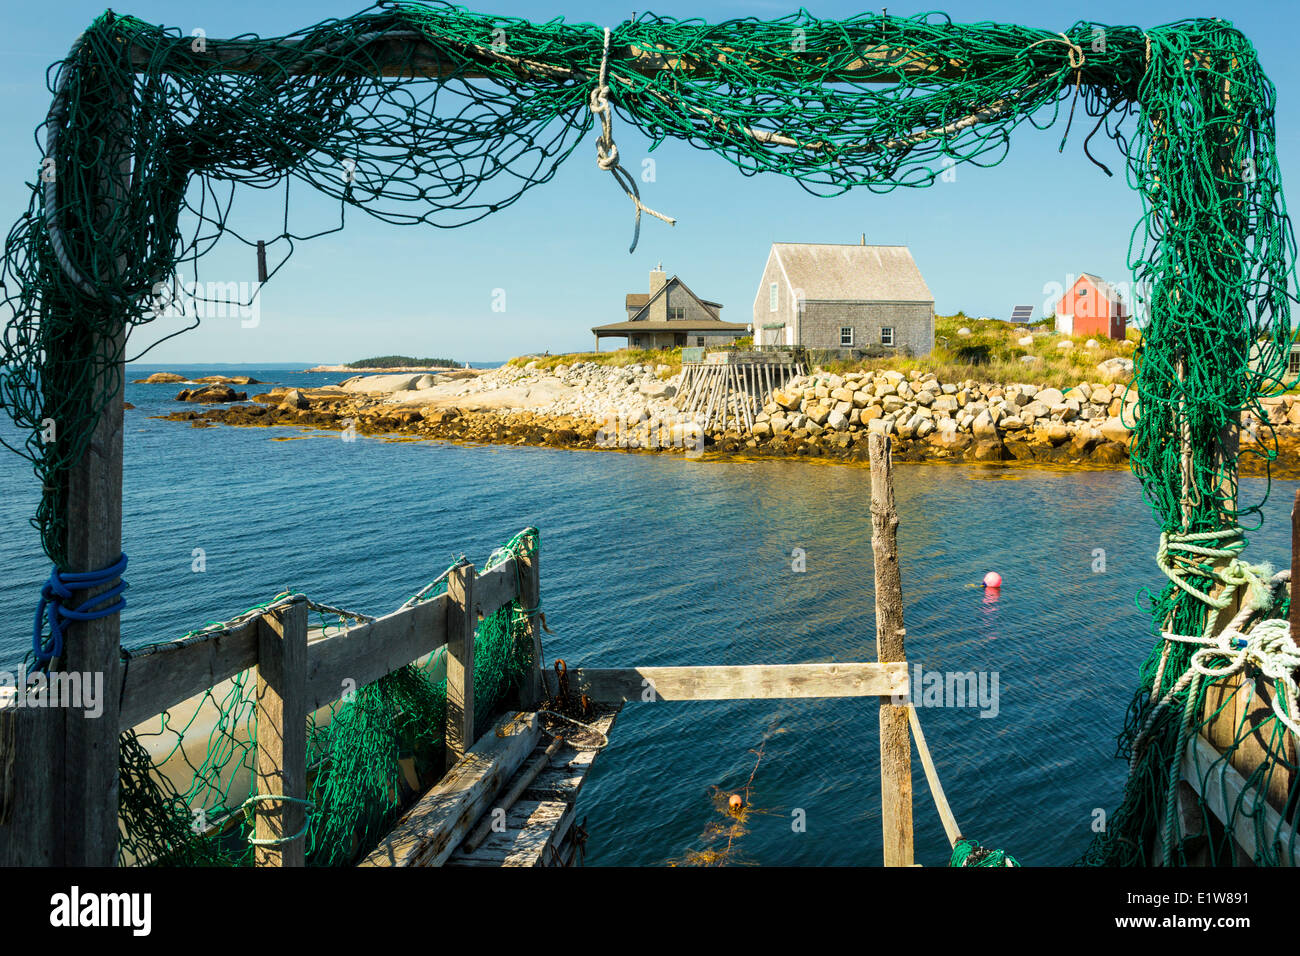 Low tide, Middle Point Cove, Nova Scotia, Canada - Stock Image